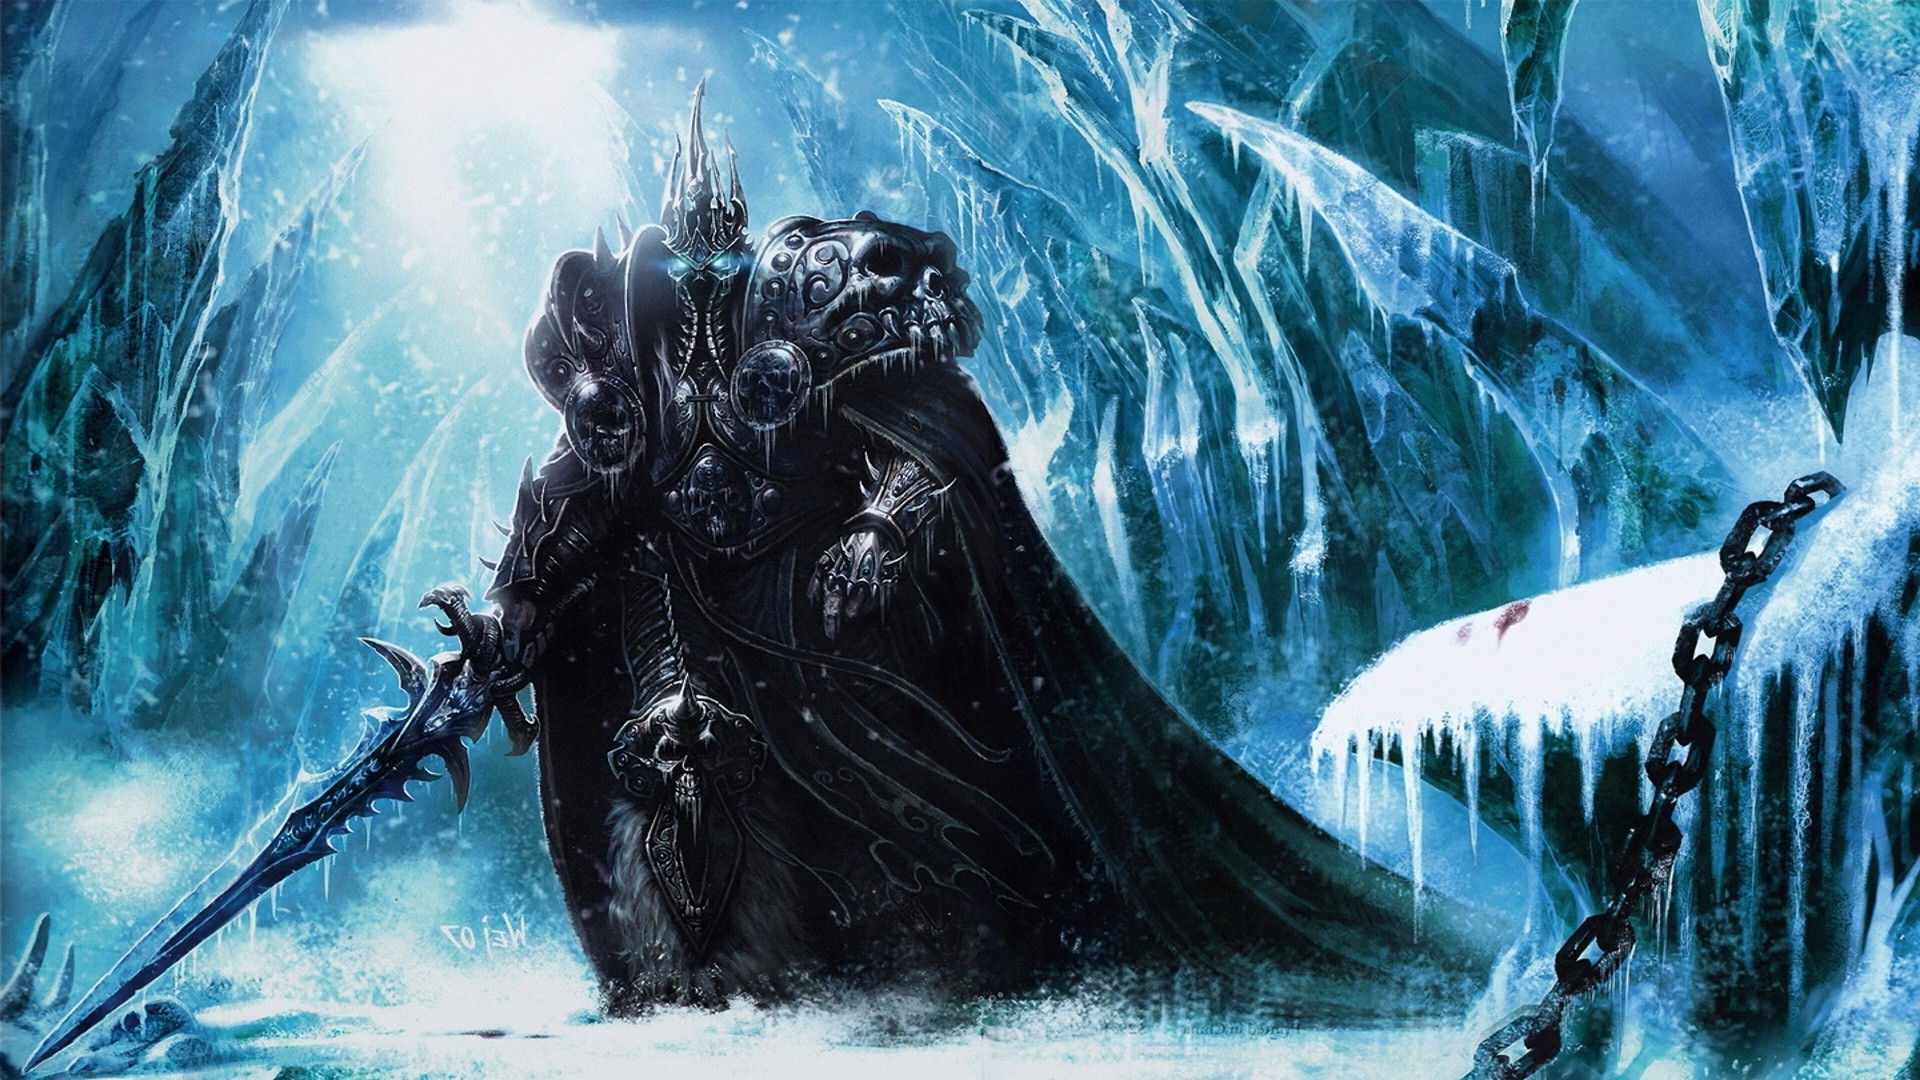 Free Download Fantasy Art Warcraft Arthas Lich King